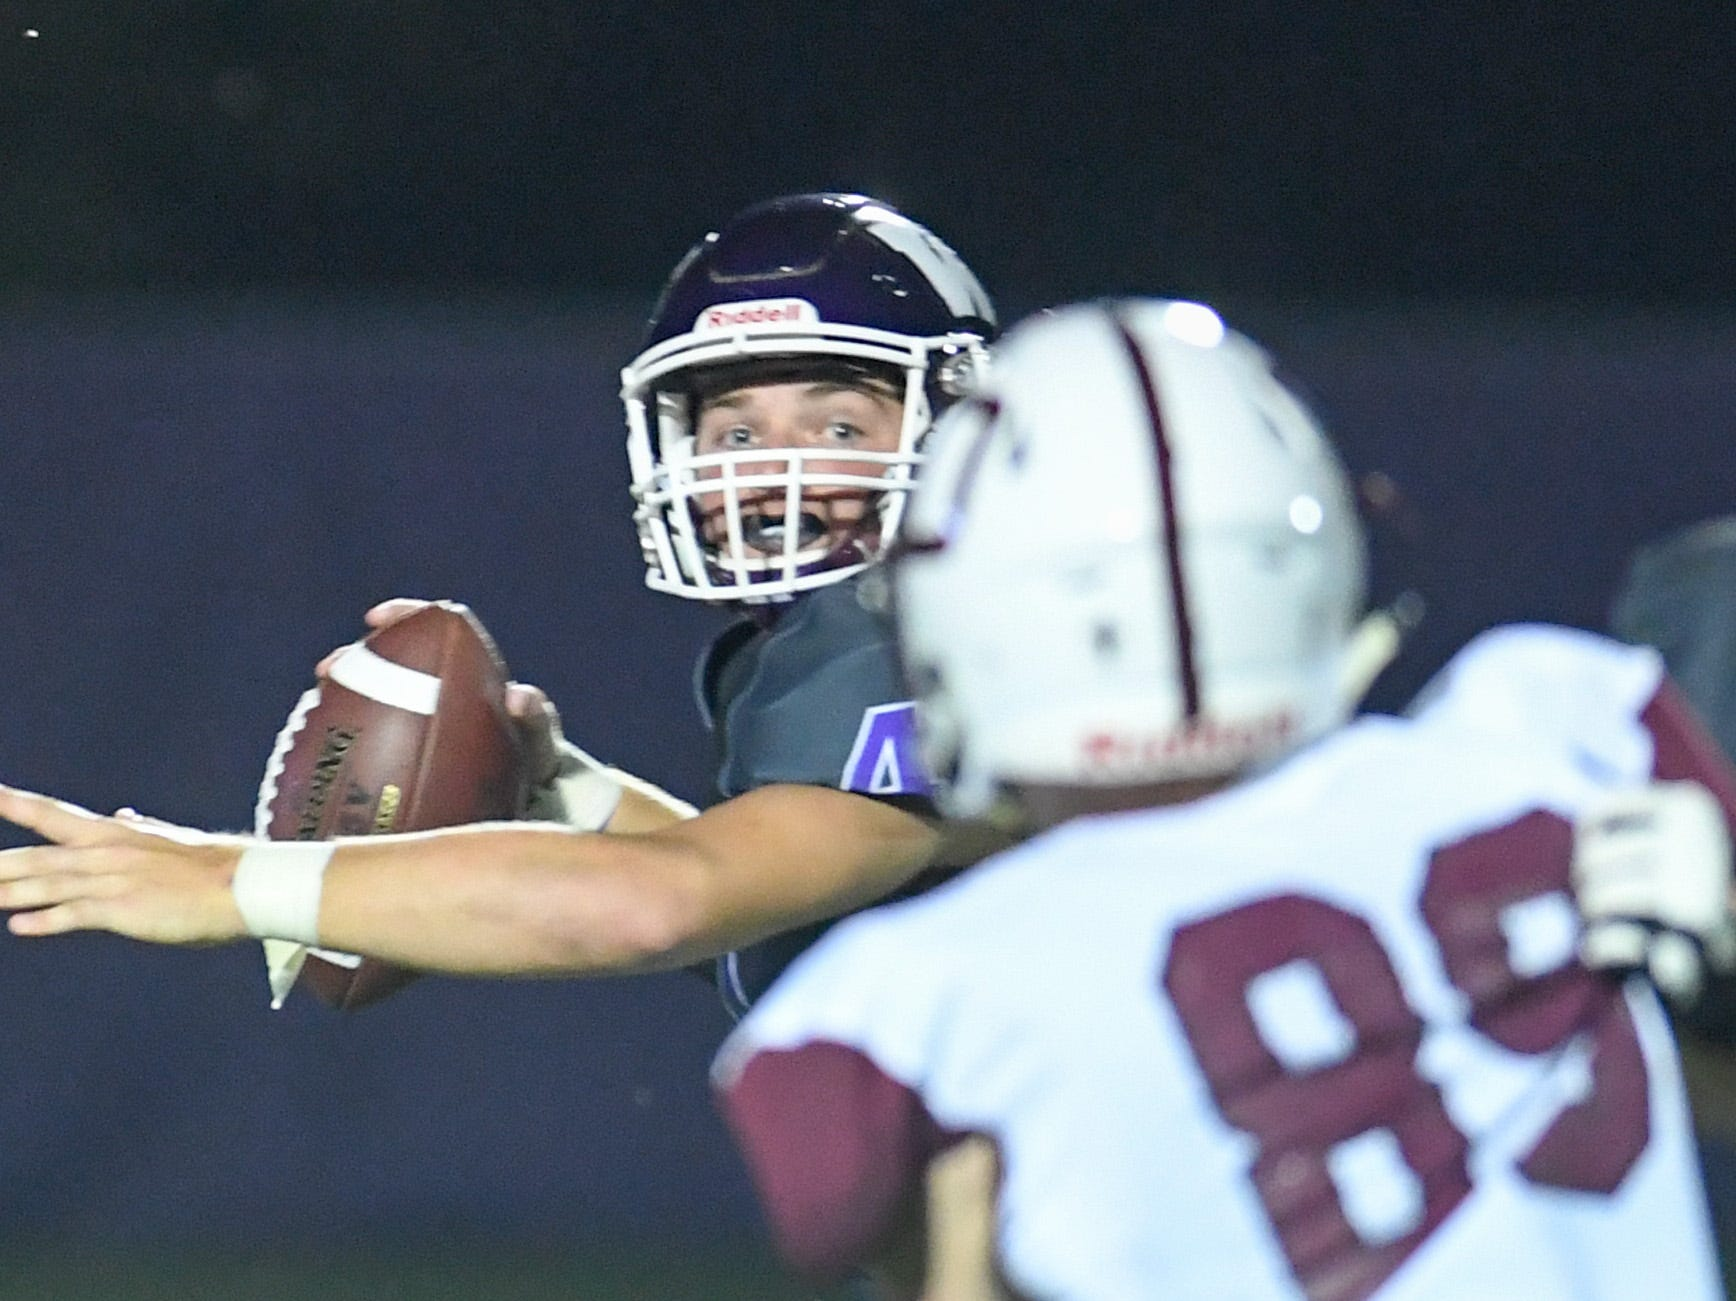 Waukee's Mitch Randall (4) looks for a open receiver on Friday, August 24, 2018 during a football game between the Waukee Warriors and the Dowling Catholic Maroons at Waukee High School.